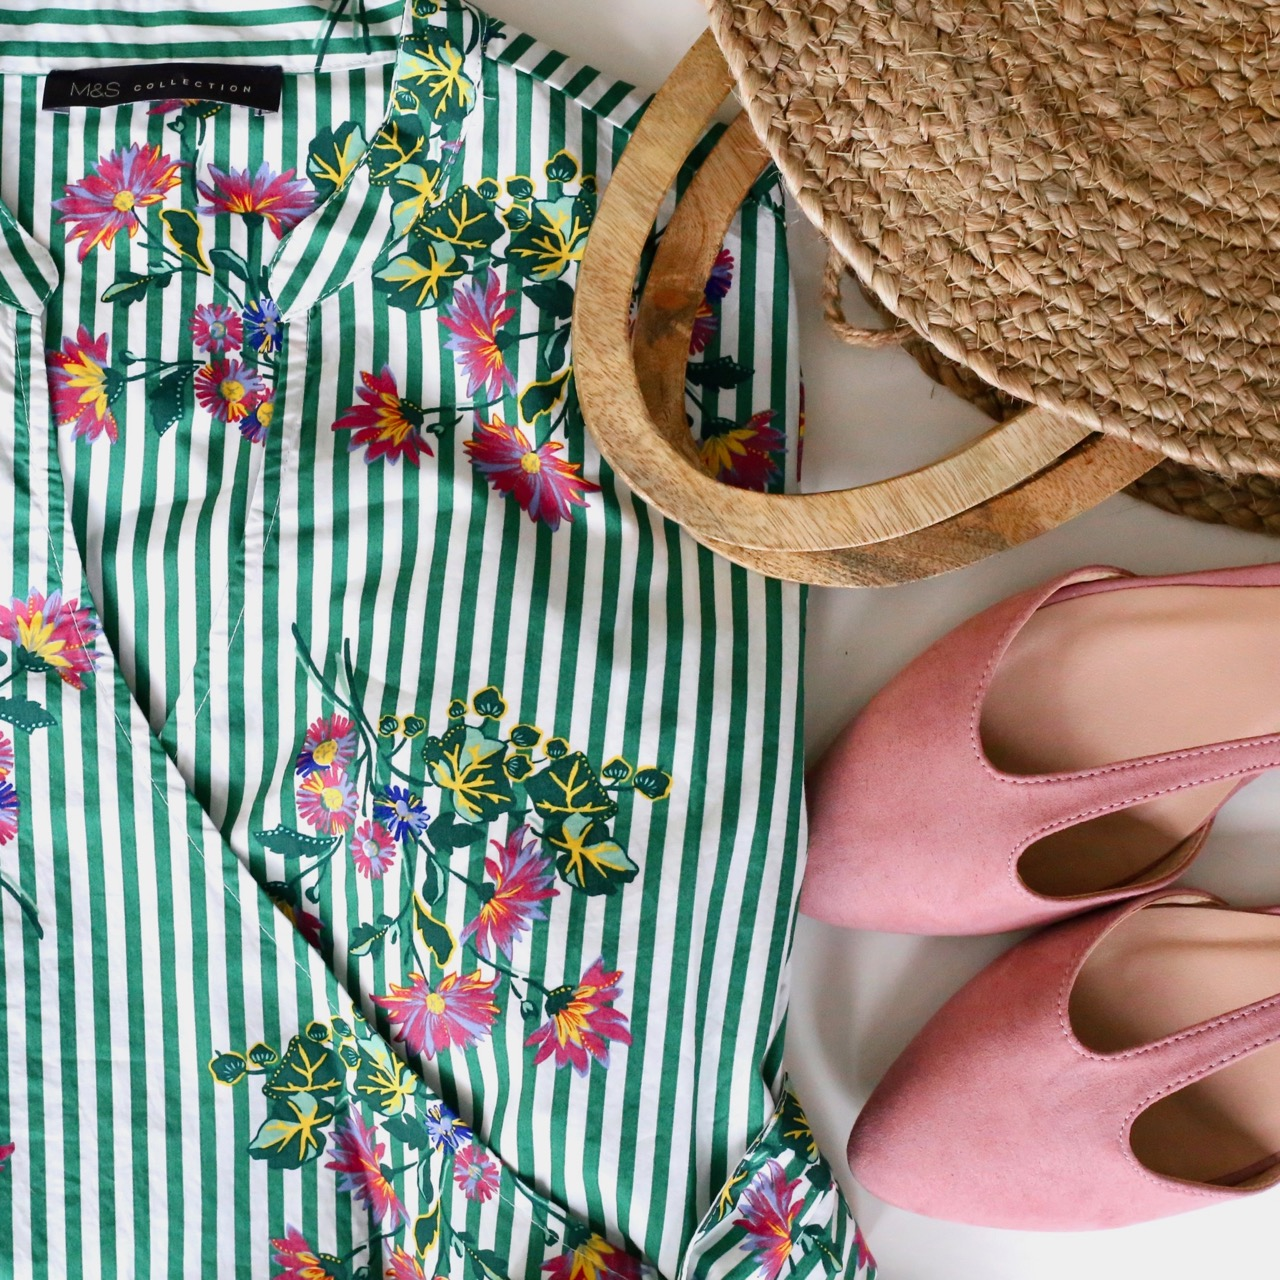 Spring clothes flat-lay